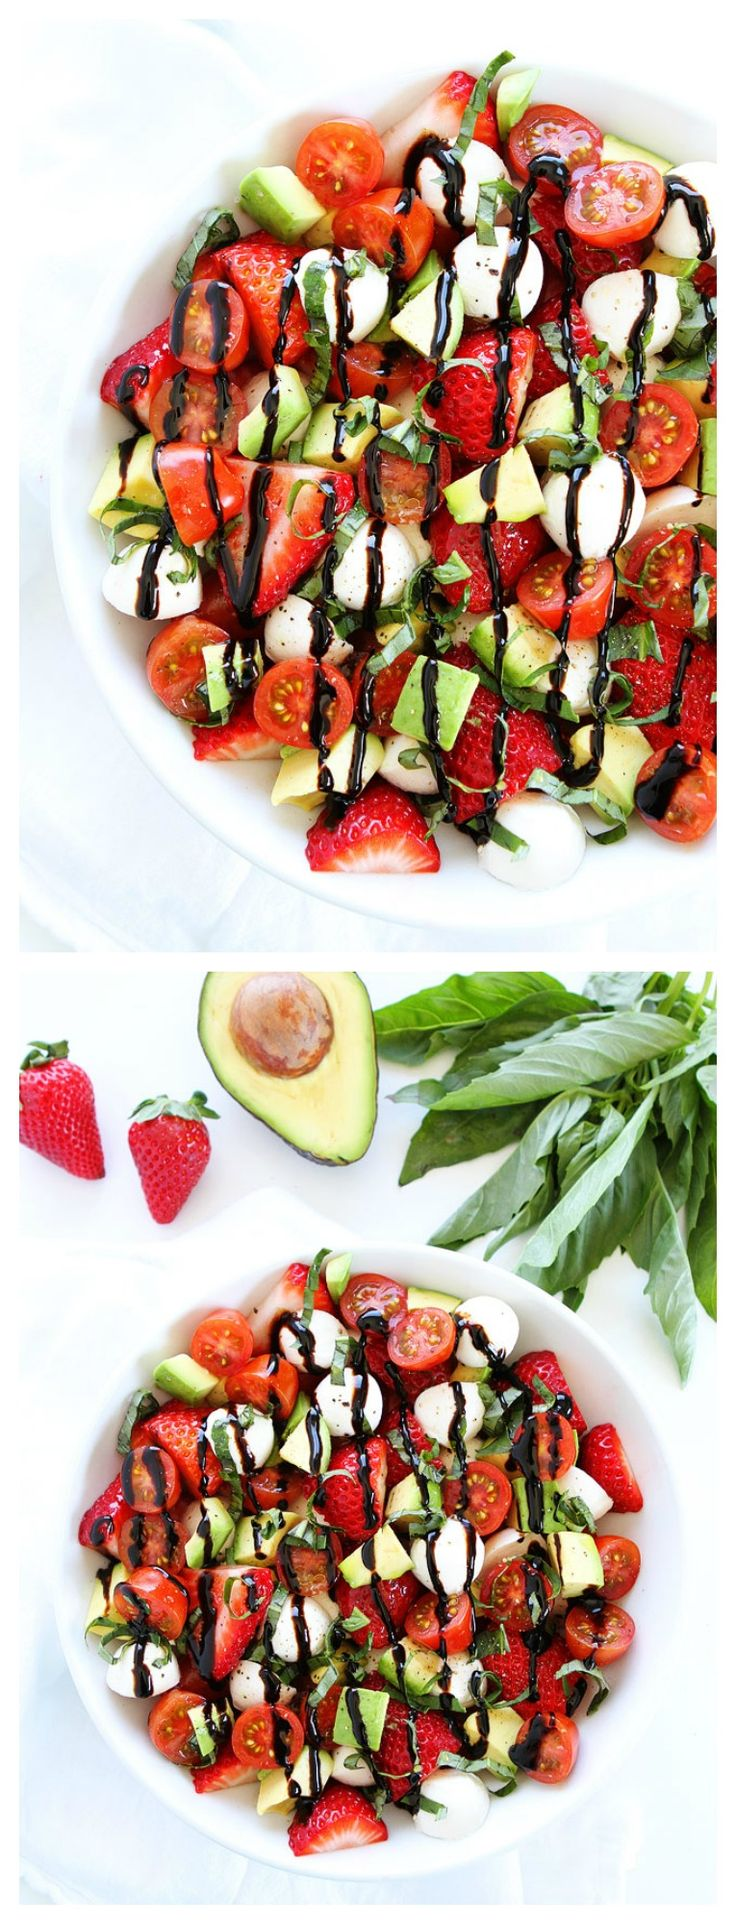 Avocado Strawberry Caprese Salad Recipe on twopeasandtheirpod.com Avocado and strawberries make this caprese salad extra special. It is a great salad for spring and summer!